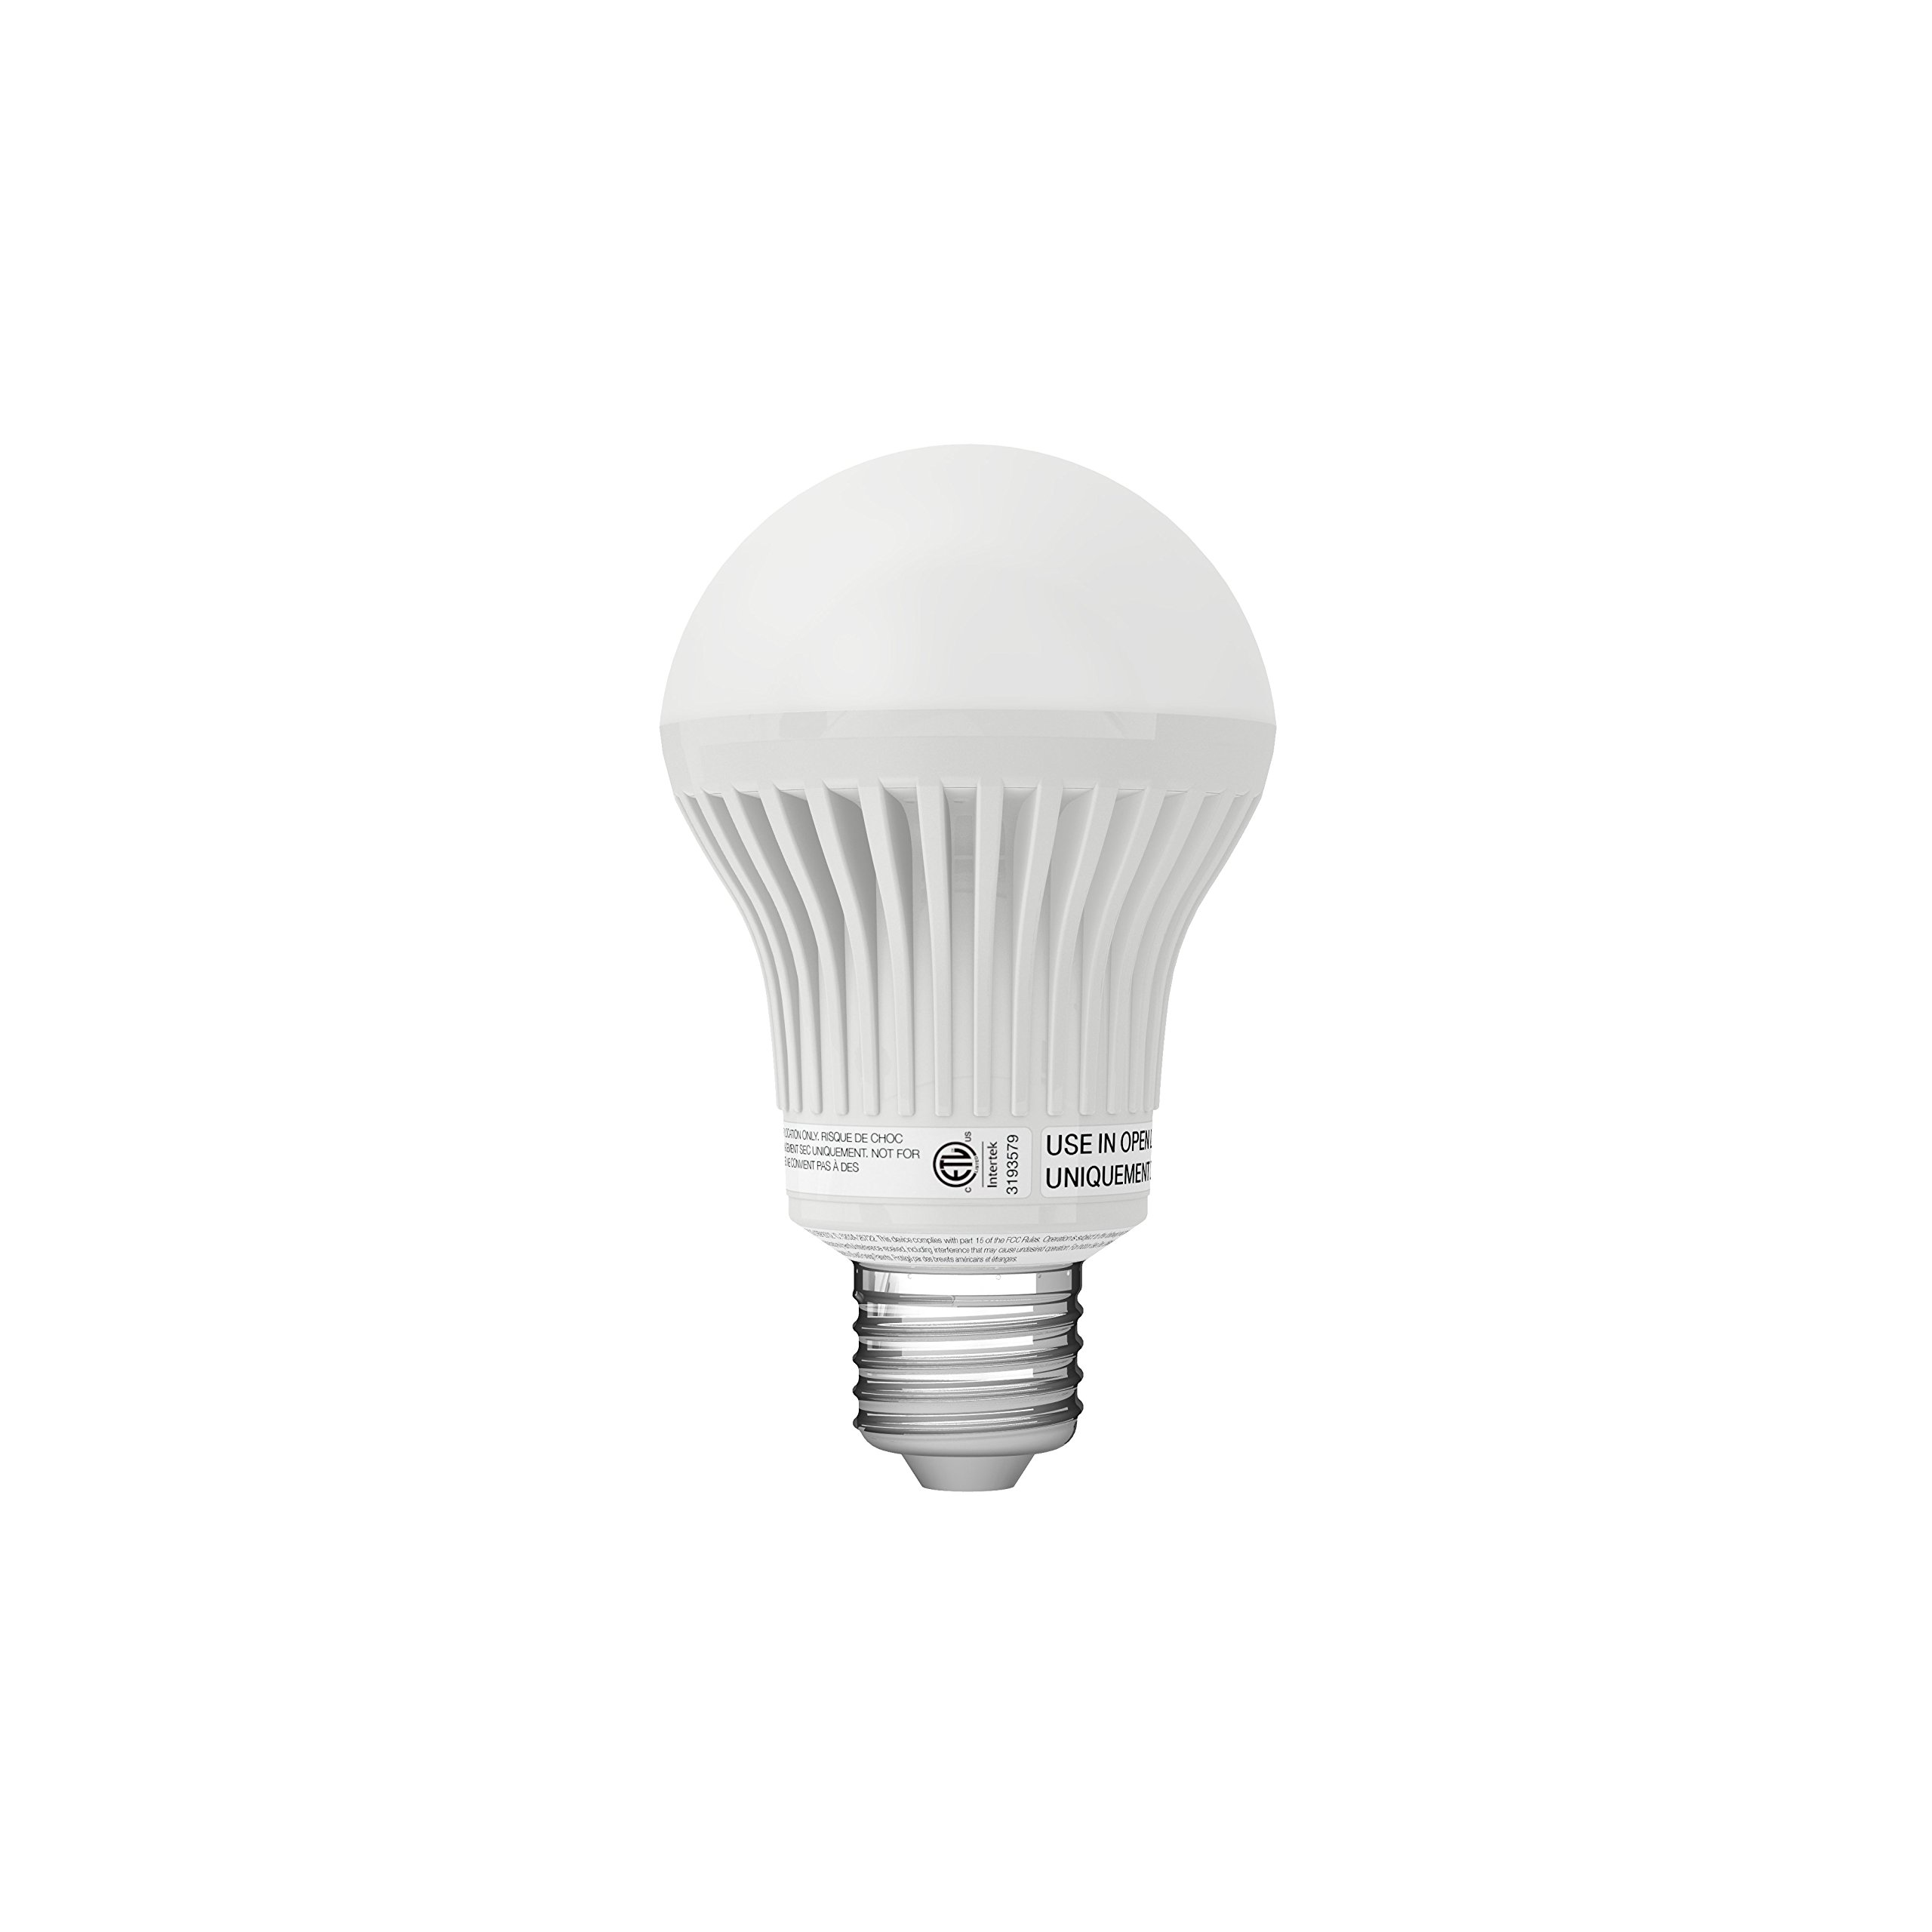 Insteon Smart Dimmable LED Light Bulb (A19), Works with Alexa via Insteon Bridge, 8W (60W equivalent) Warm White, Uses Superior Dual-Mesh Wireless Technology for Unbeatable Reliability - Better than Wi-Fi, Zigbee and Z-Wave by Insteon (Image #1)